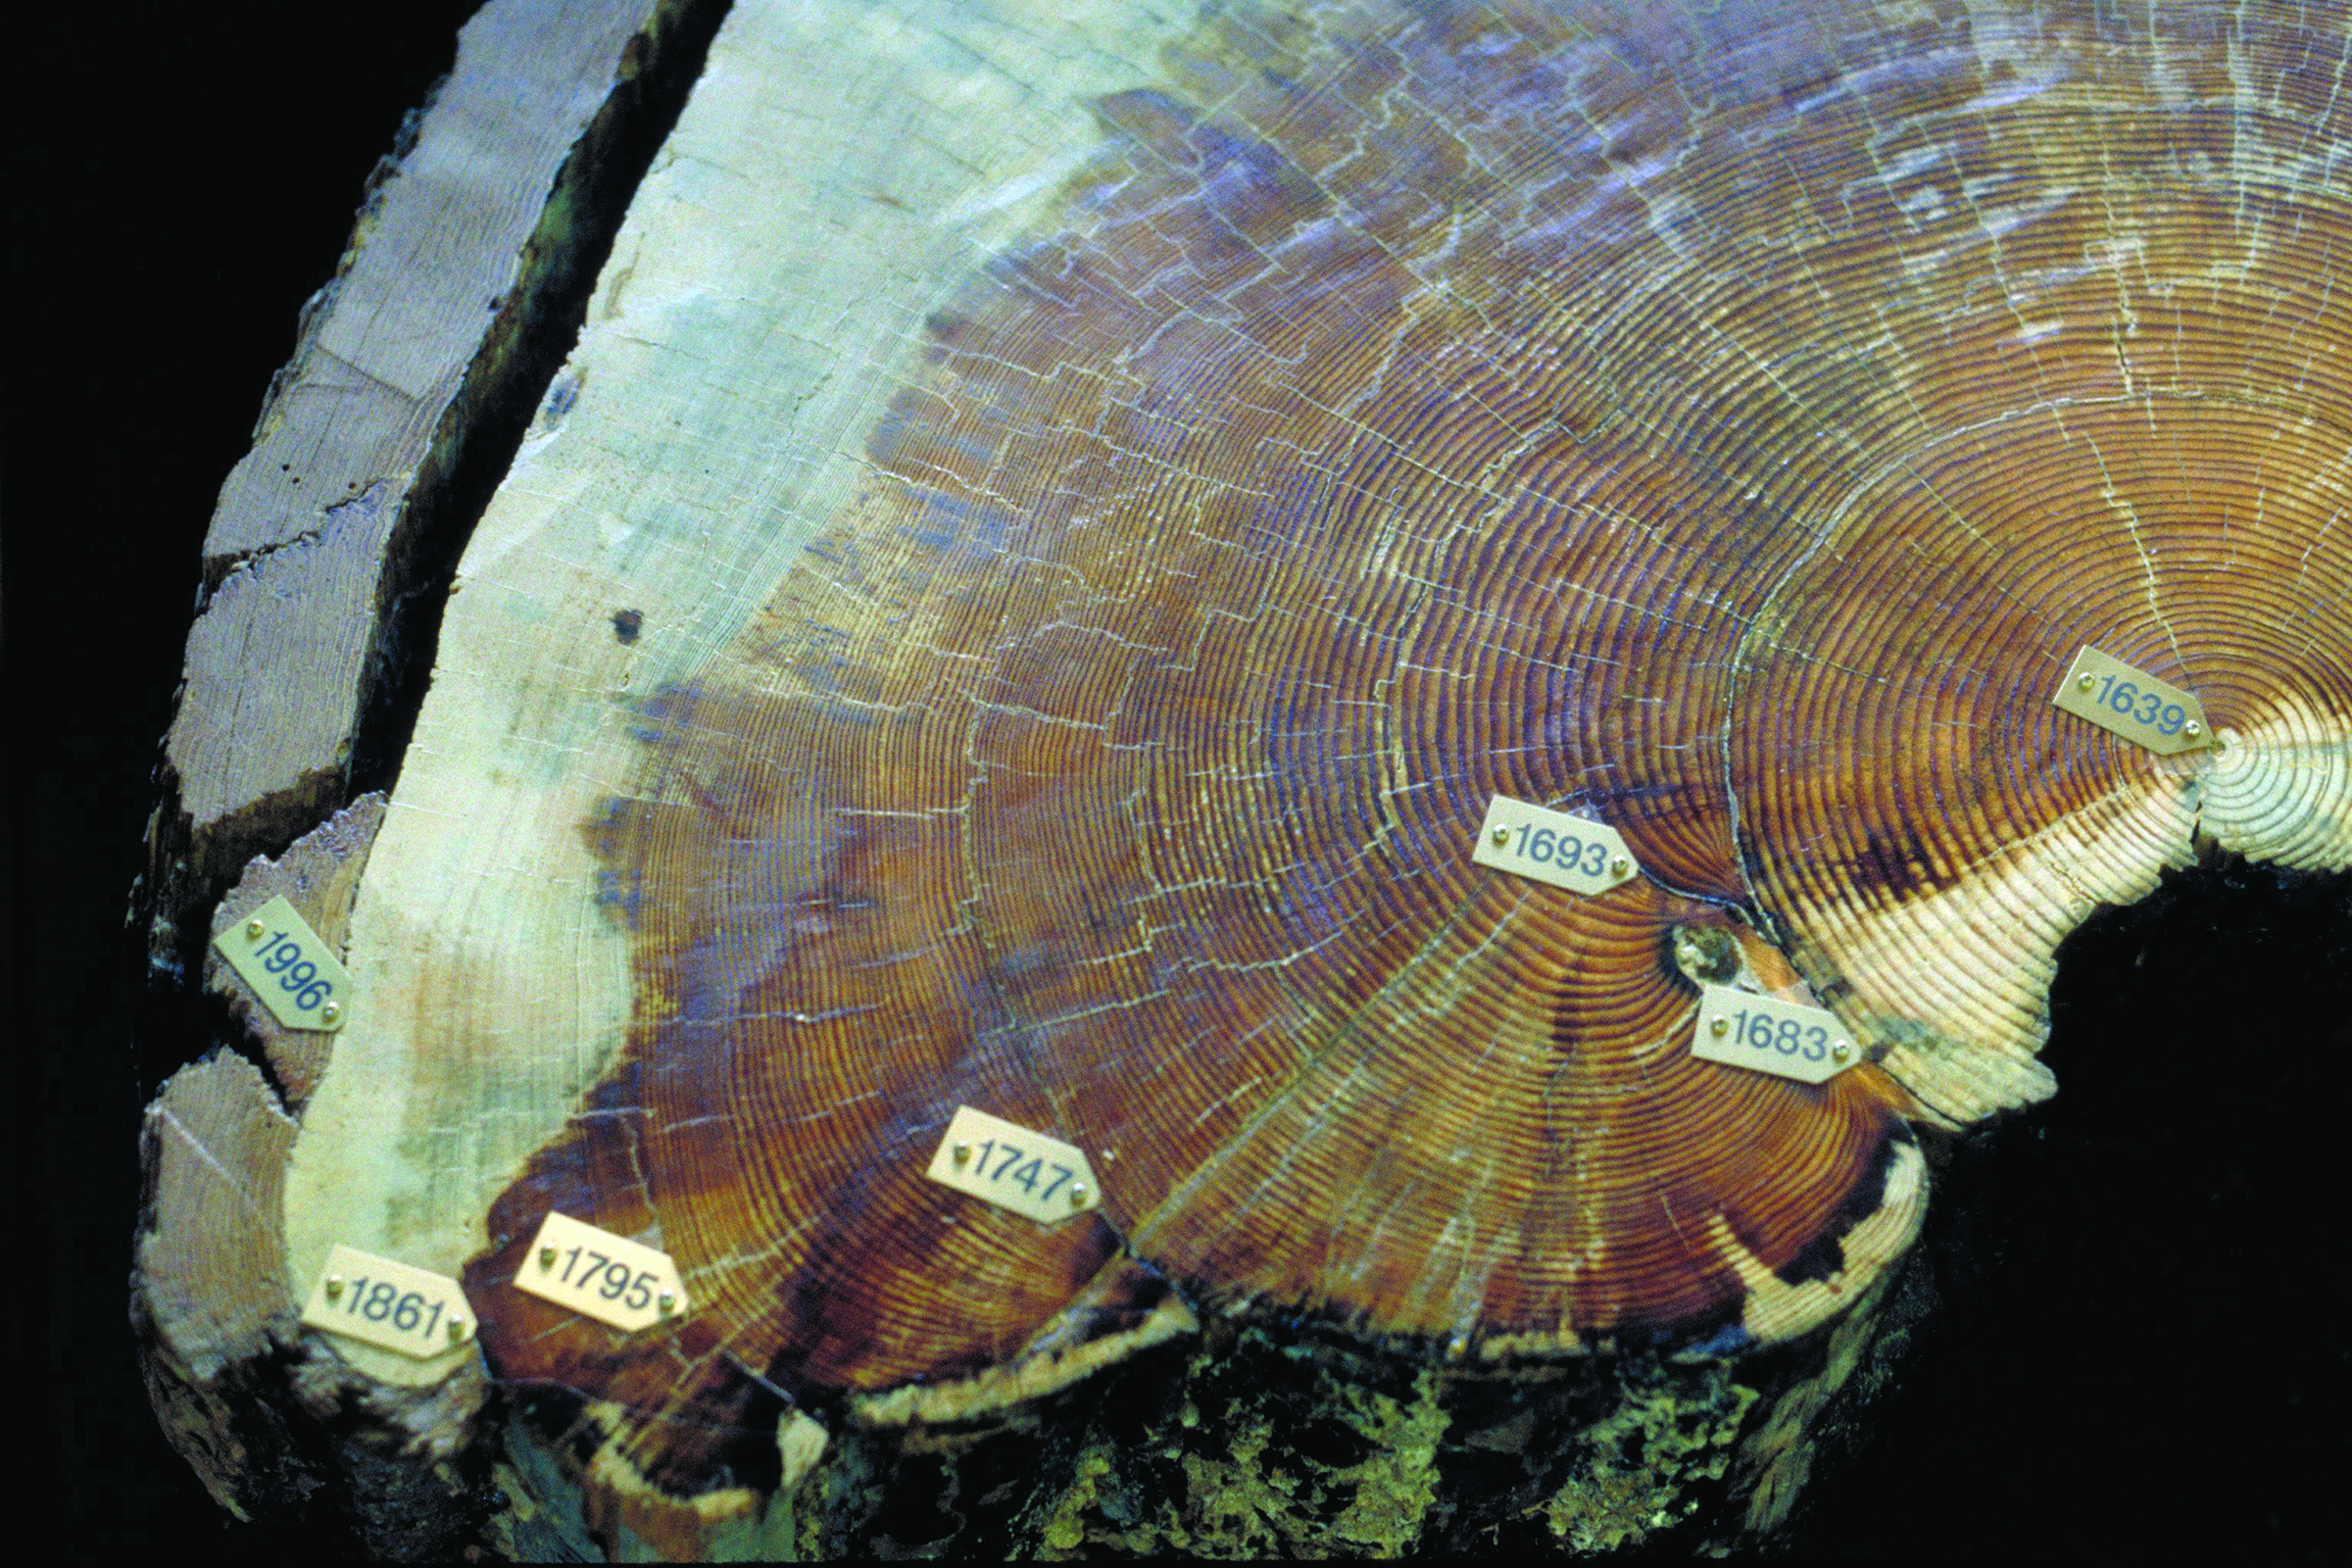 Figure 3. Fire scars are visible on this crosscut section of Pinus ponderosa.